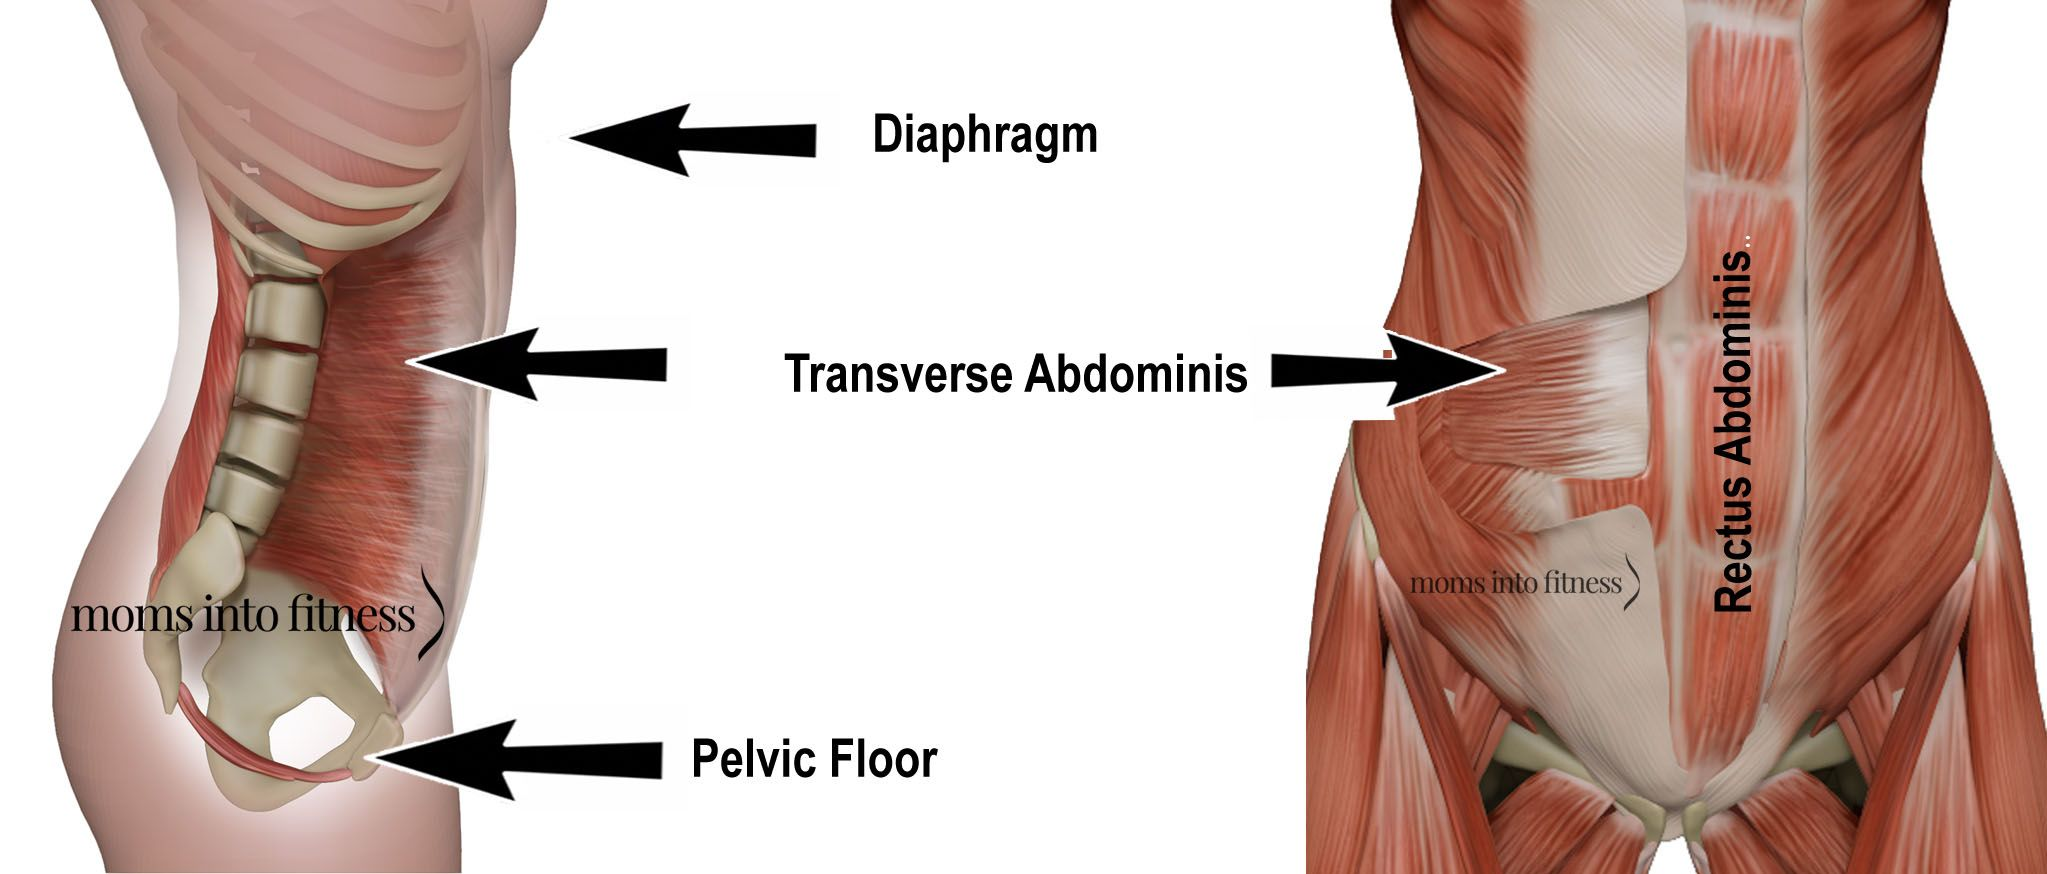 25+ Transverse abdominis before and after ideas